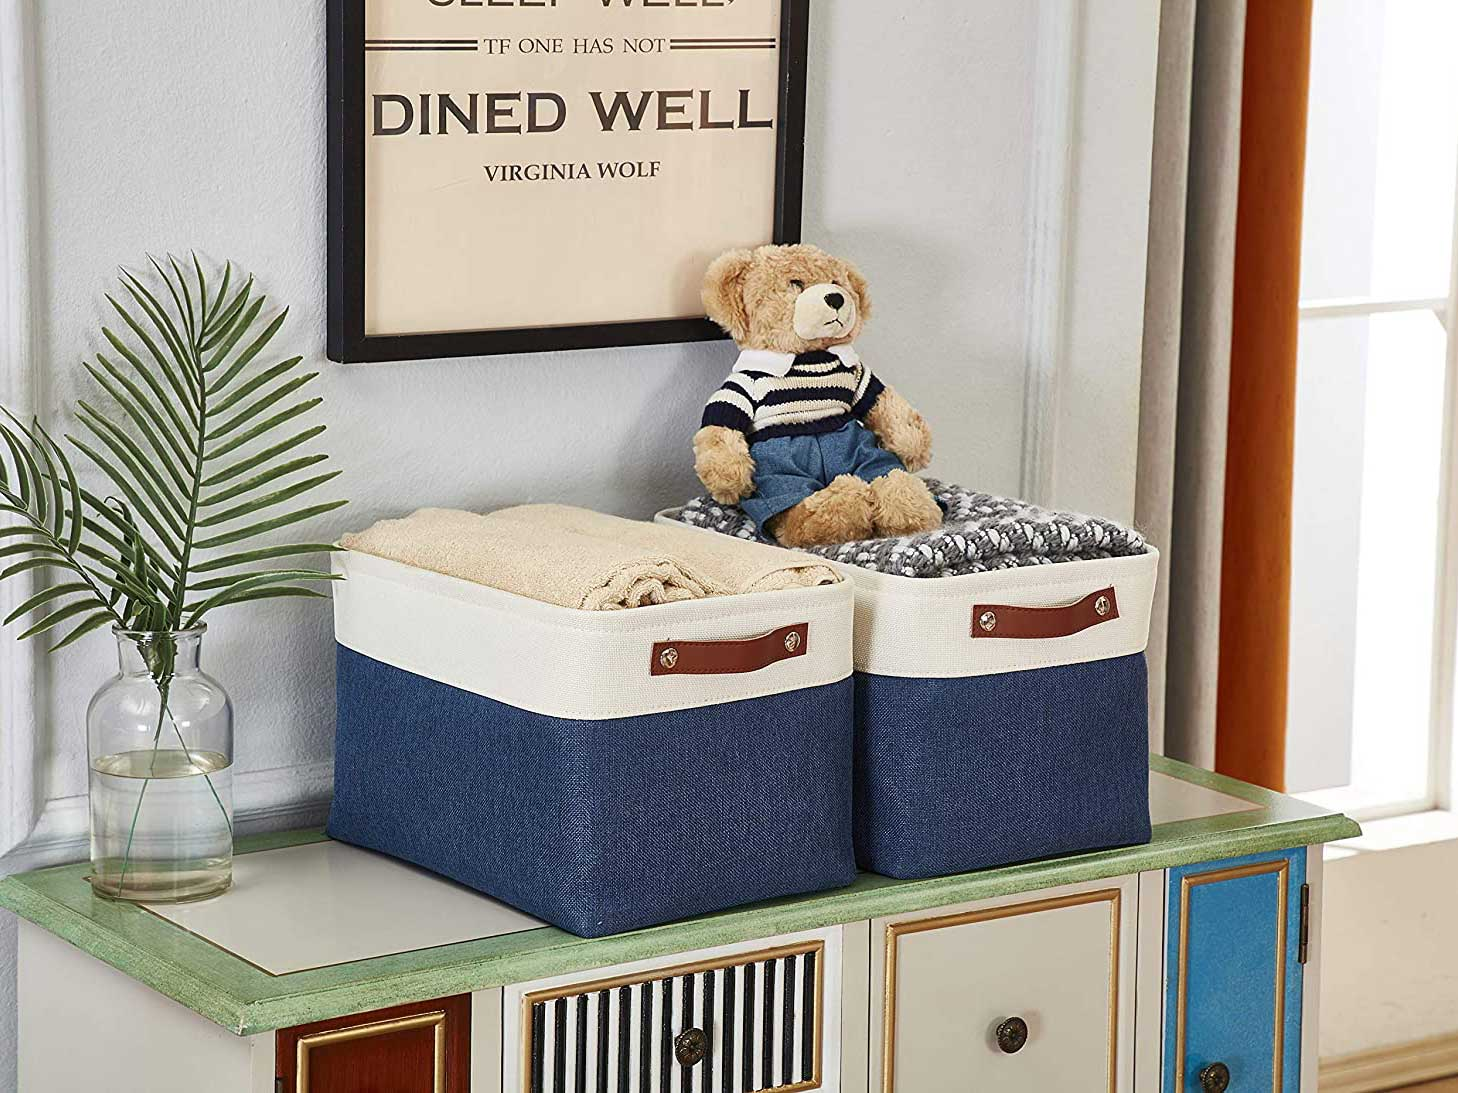 Storage cubes sitting on top of dresser with stuffed teddy bear and blankets.